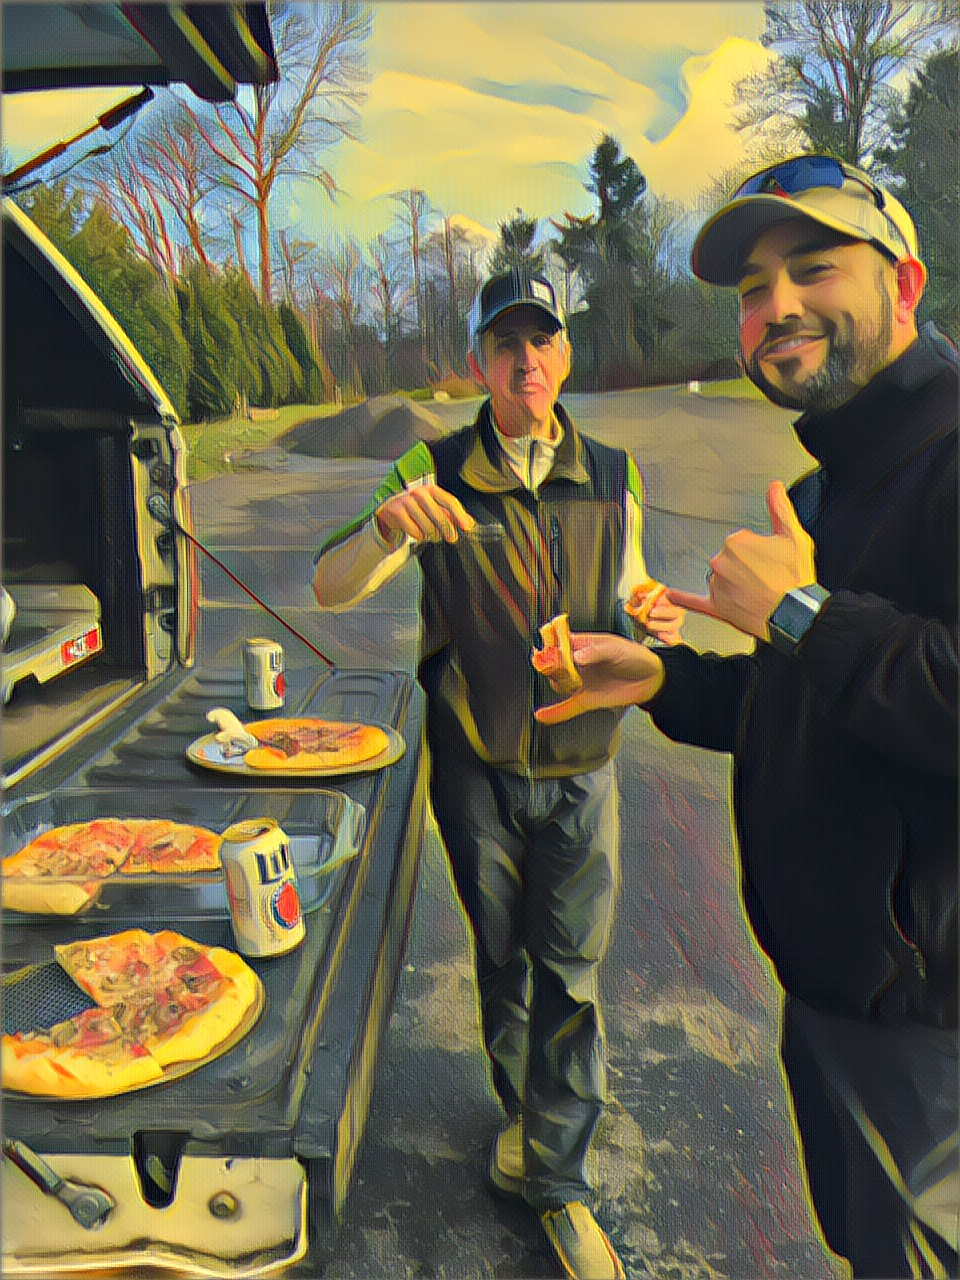 Doug and a test subject during a recent pizza experiment.